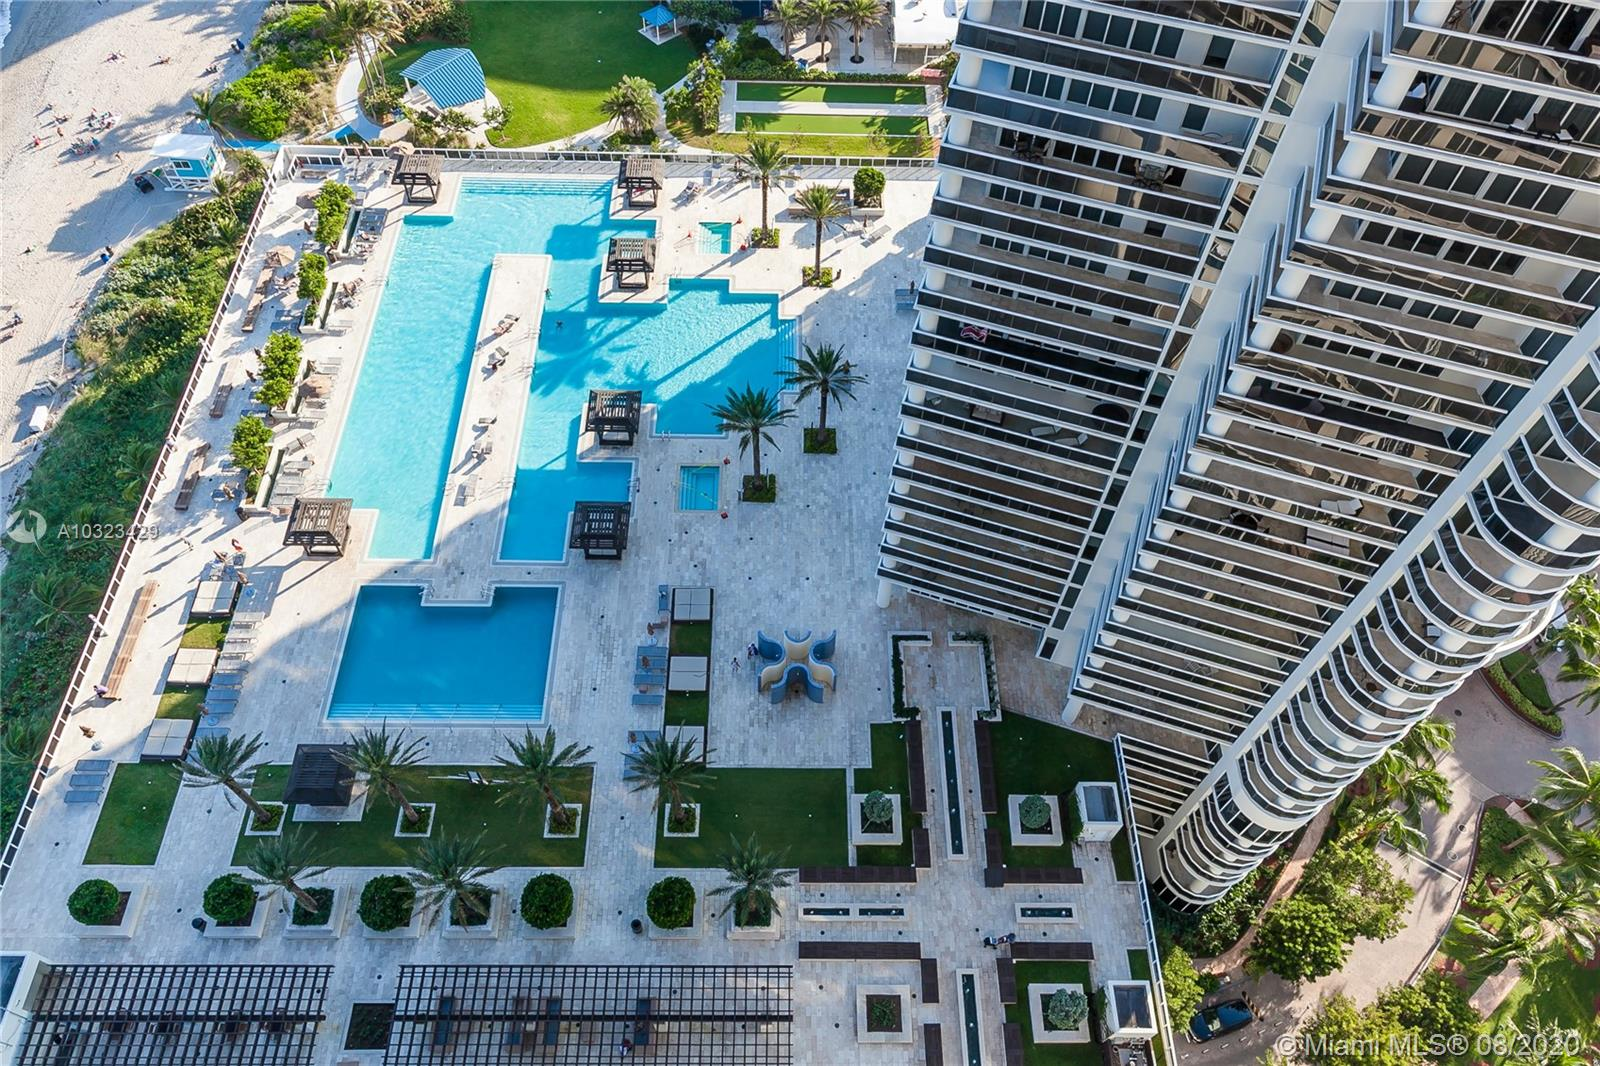 1830 South Ocean Dr, #3204, Hallandale Beach, FL 33009